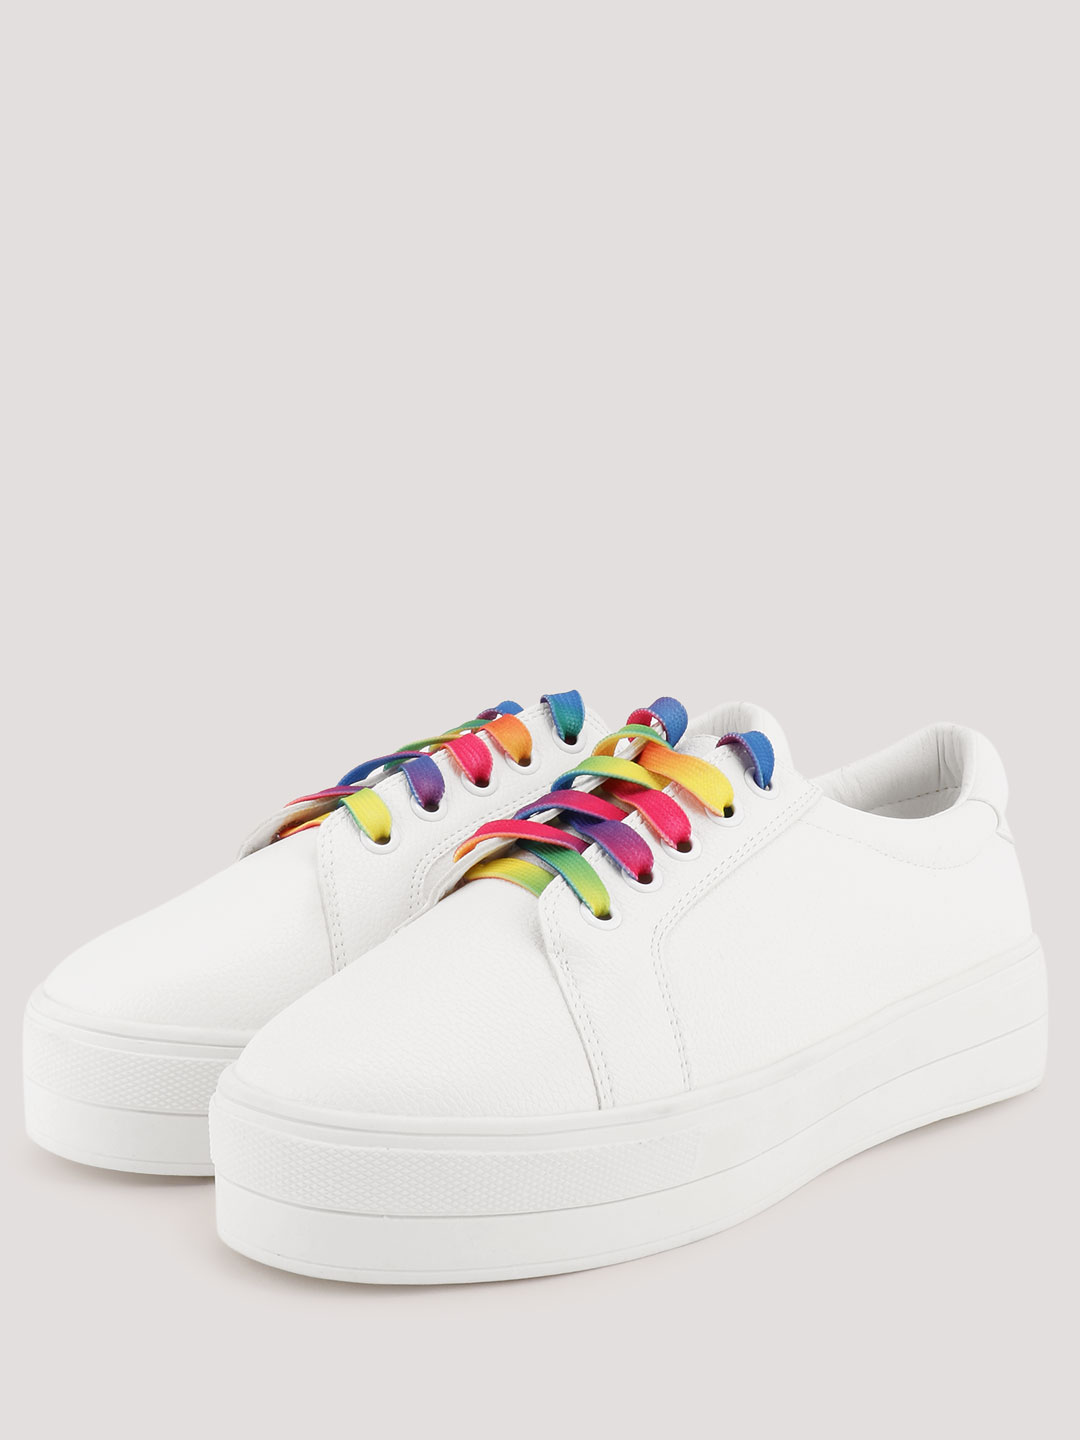 White Trainers With Rainbow Lace